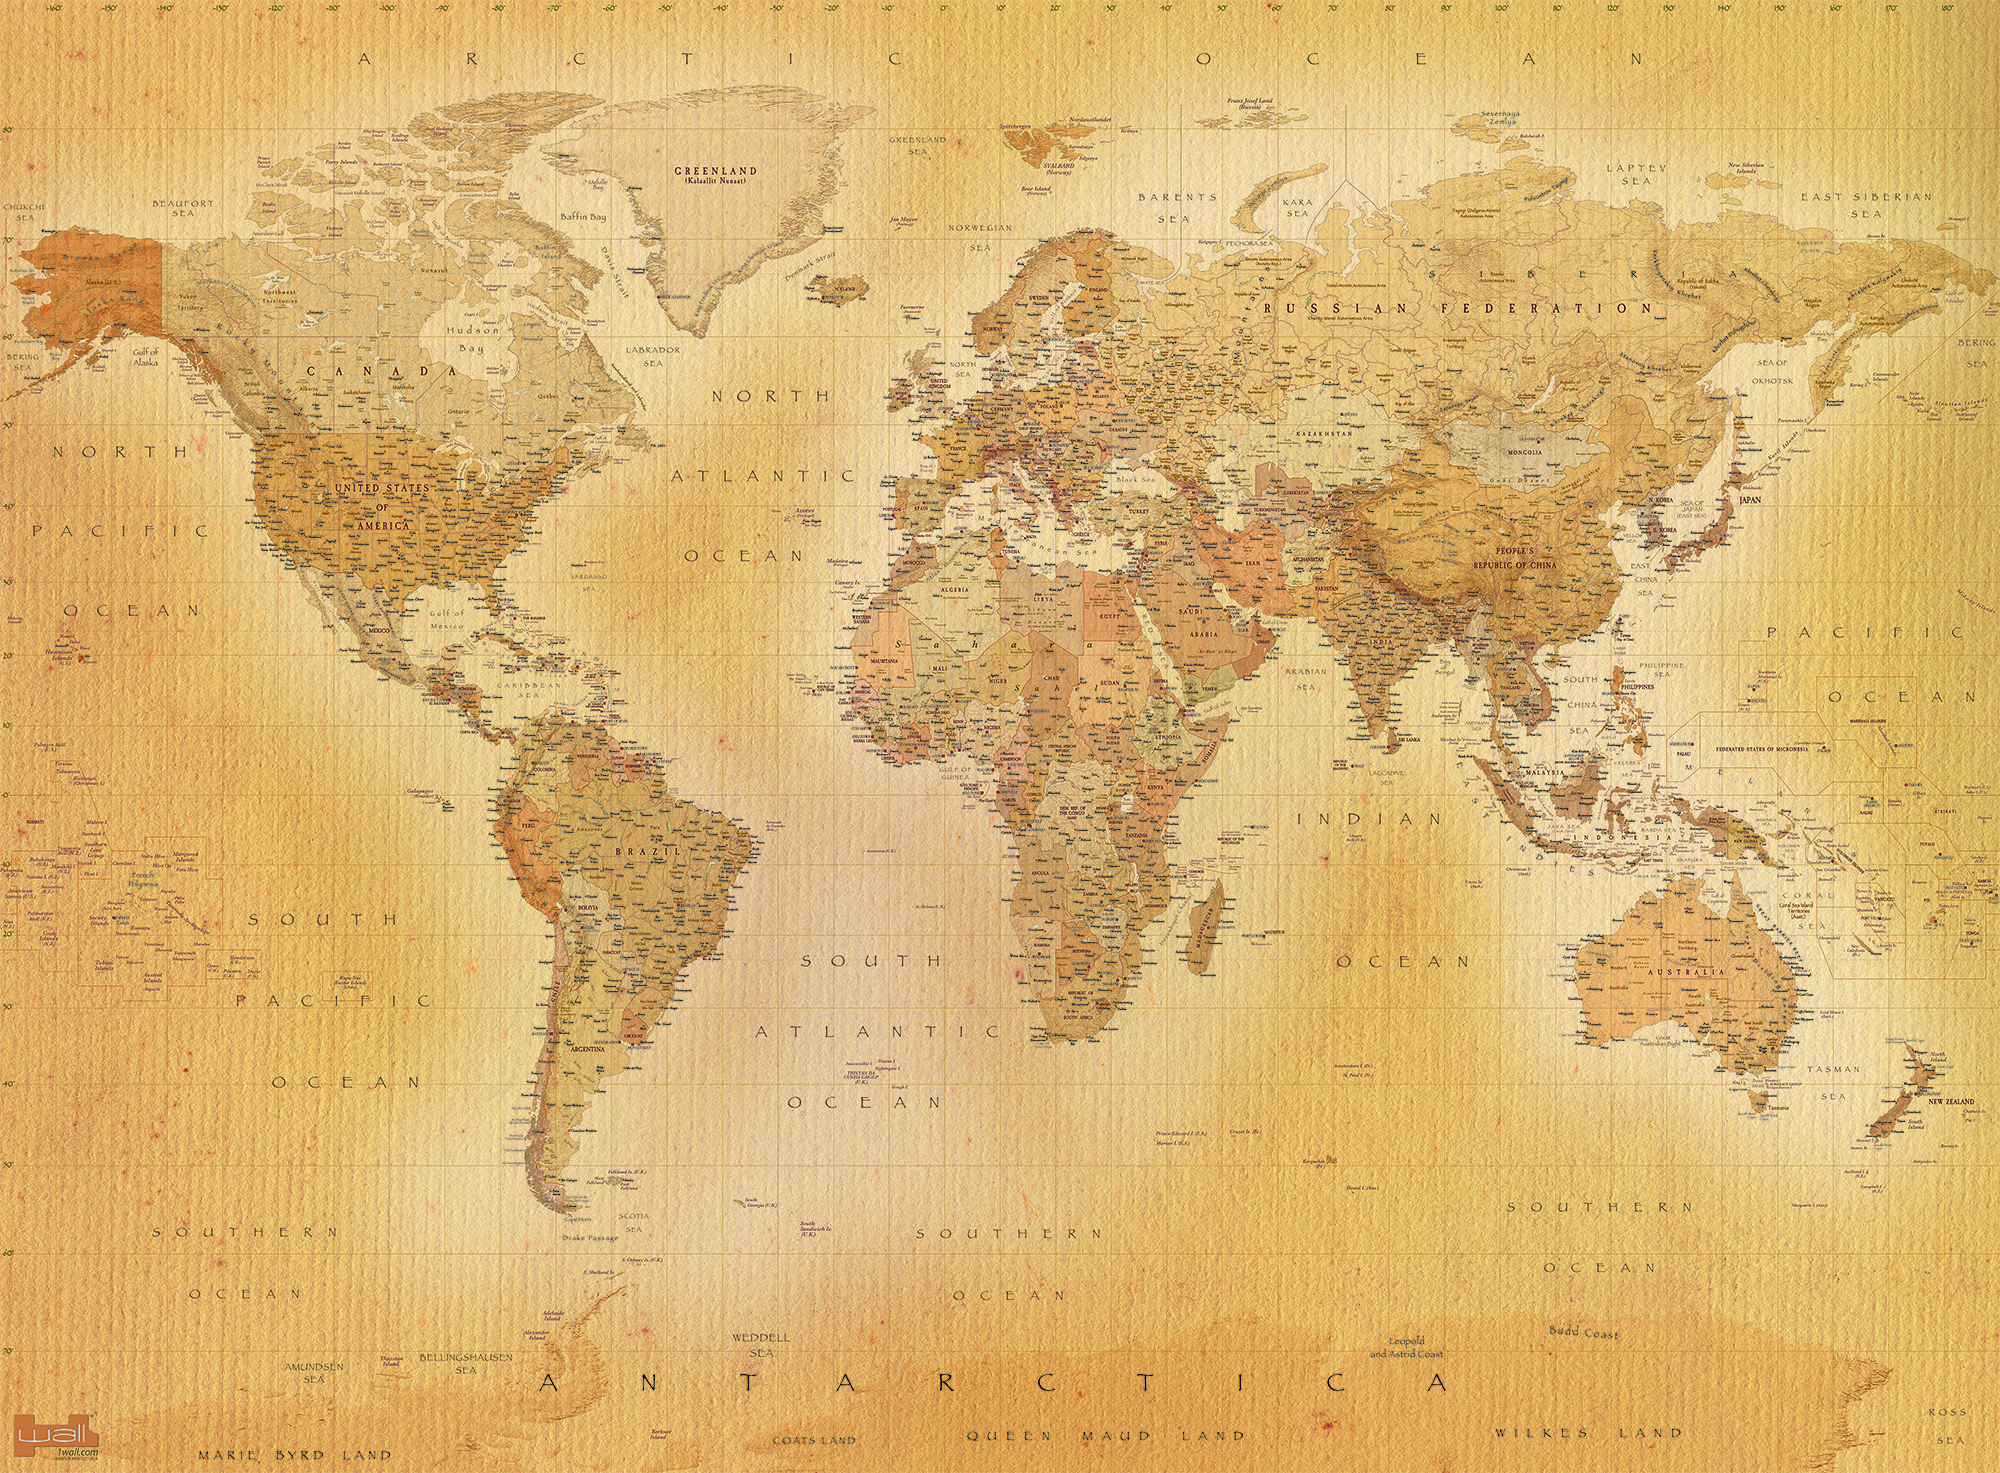 World map wallpaper hd pixelstalk w4pl tanvintage 001 best download world map wallpapers hd gumiabroncs Choice Image